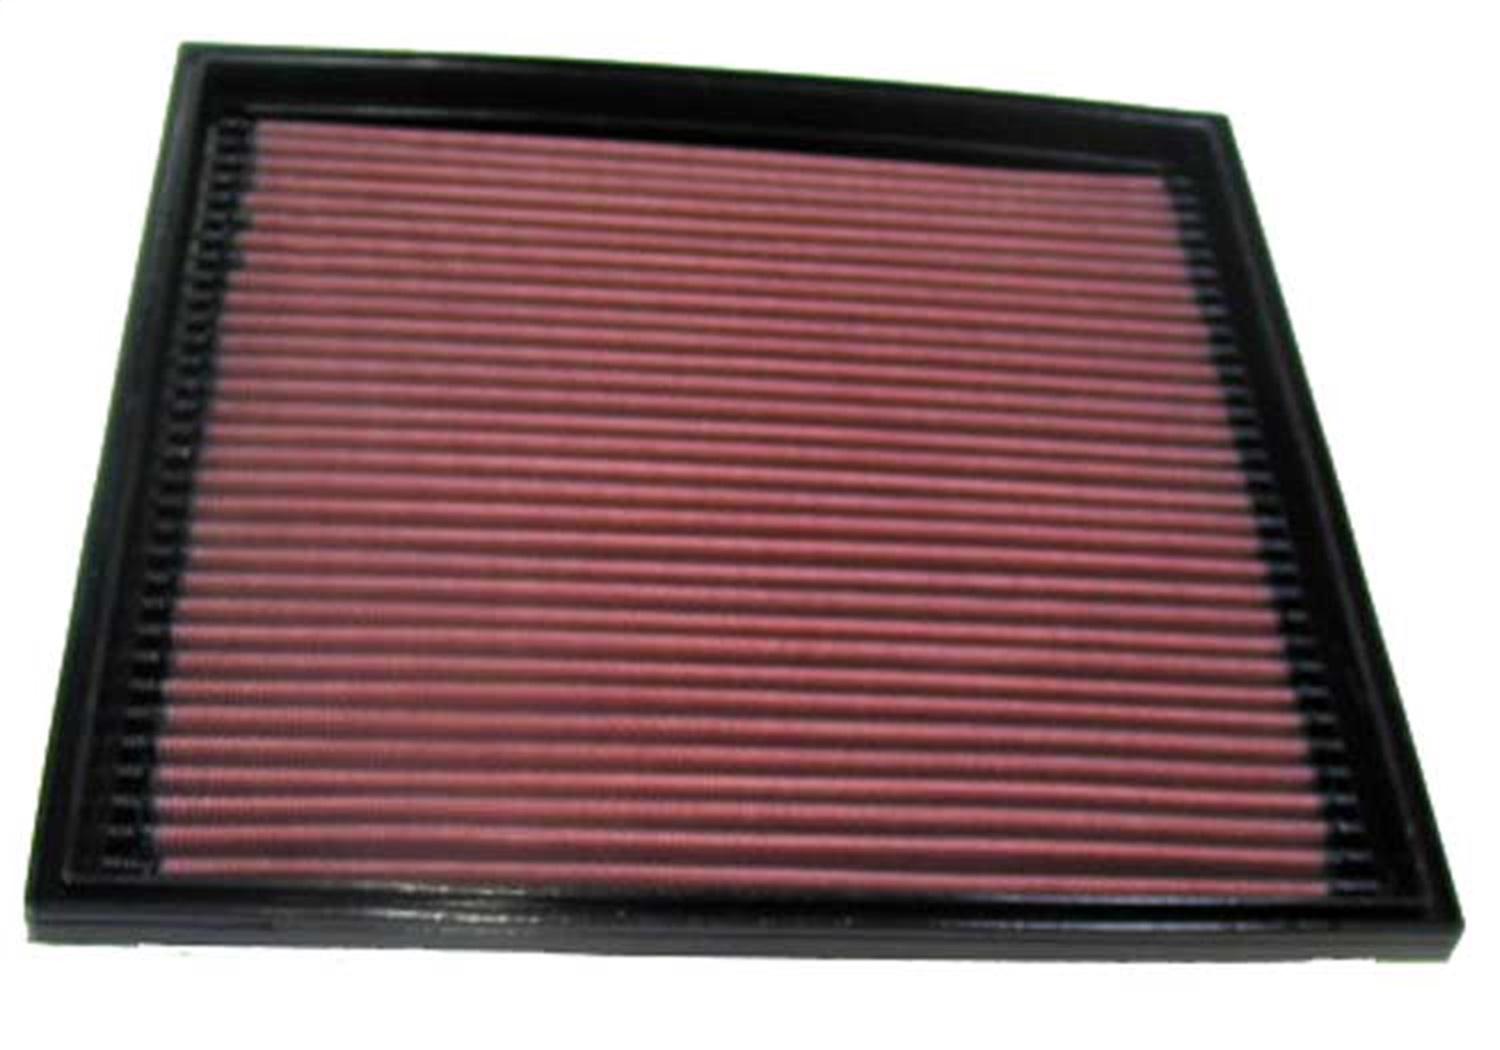 K&N Filters 33-2734 Air Filter Fits 97-01 Catera 33-2734